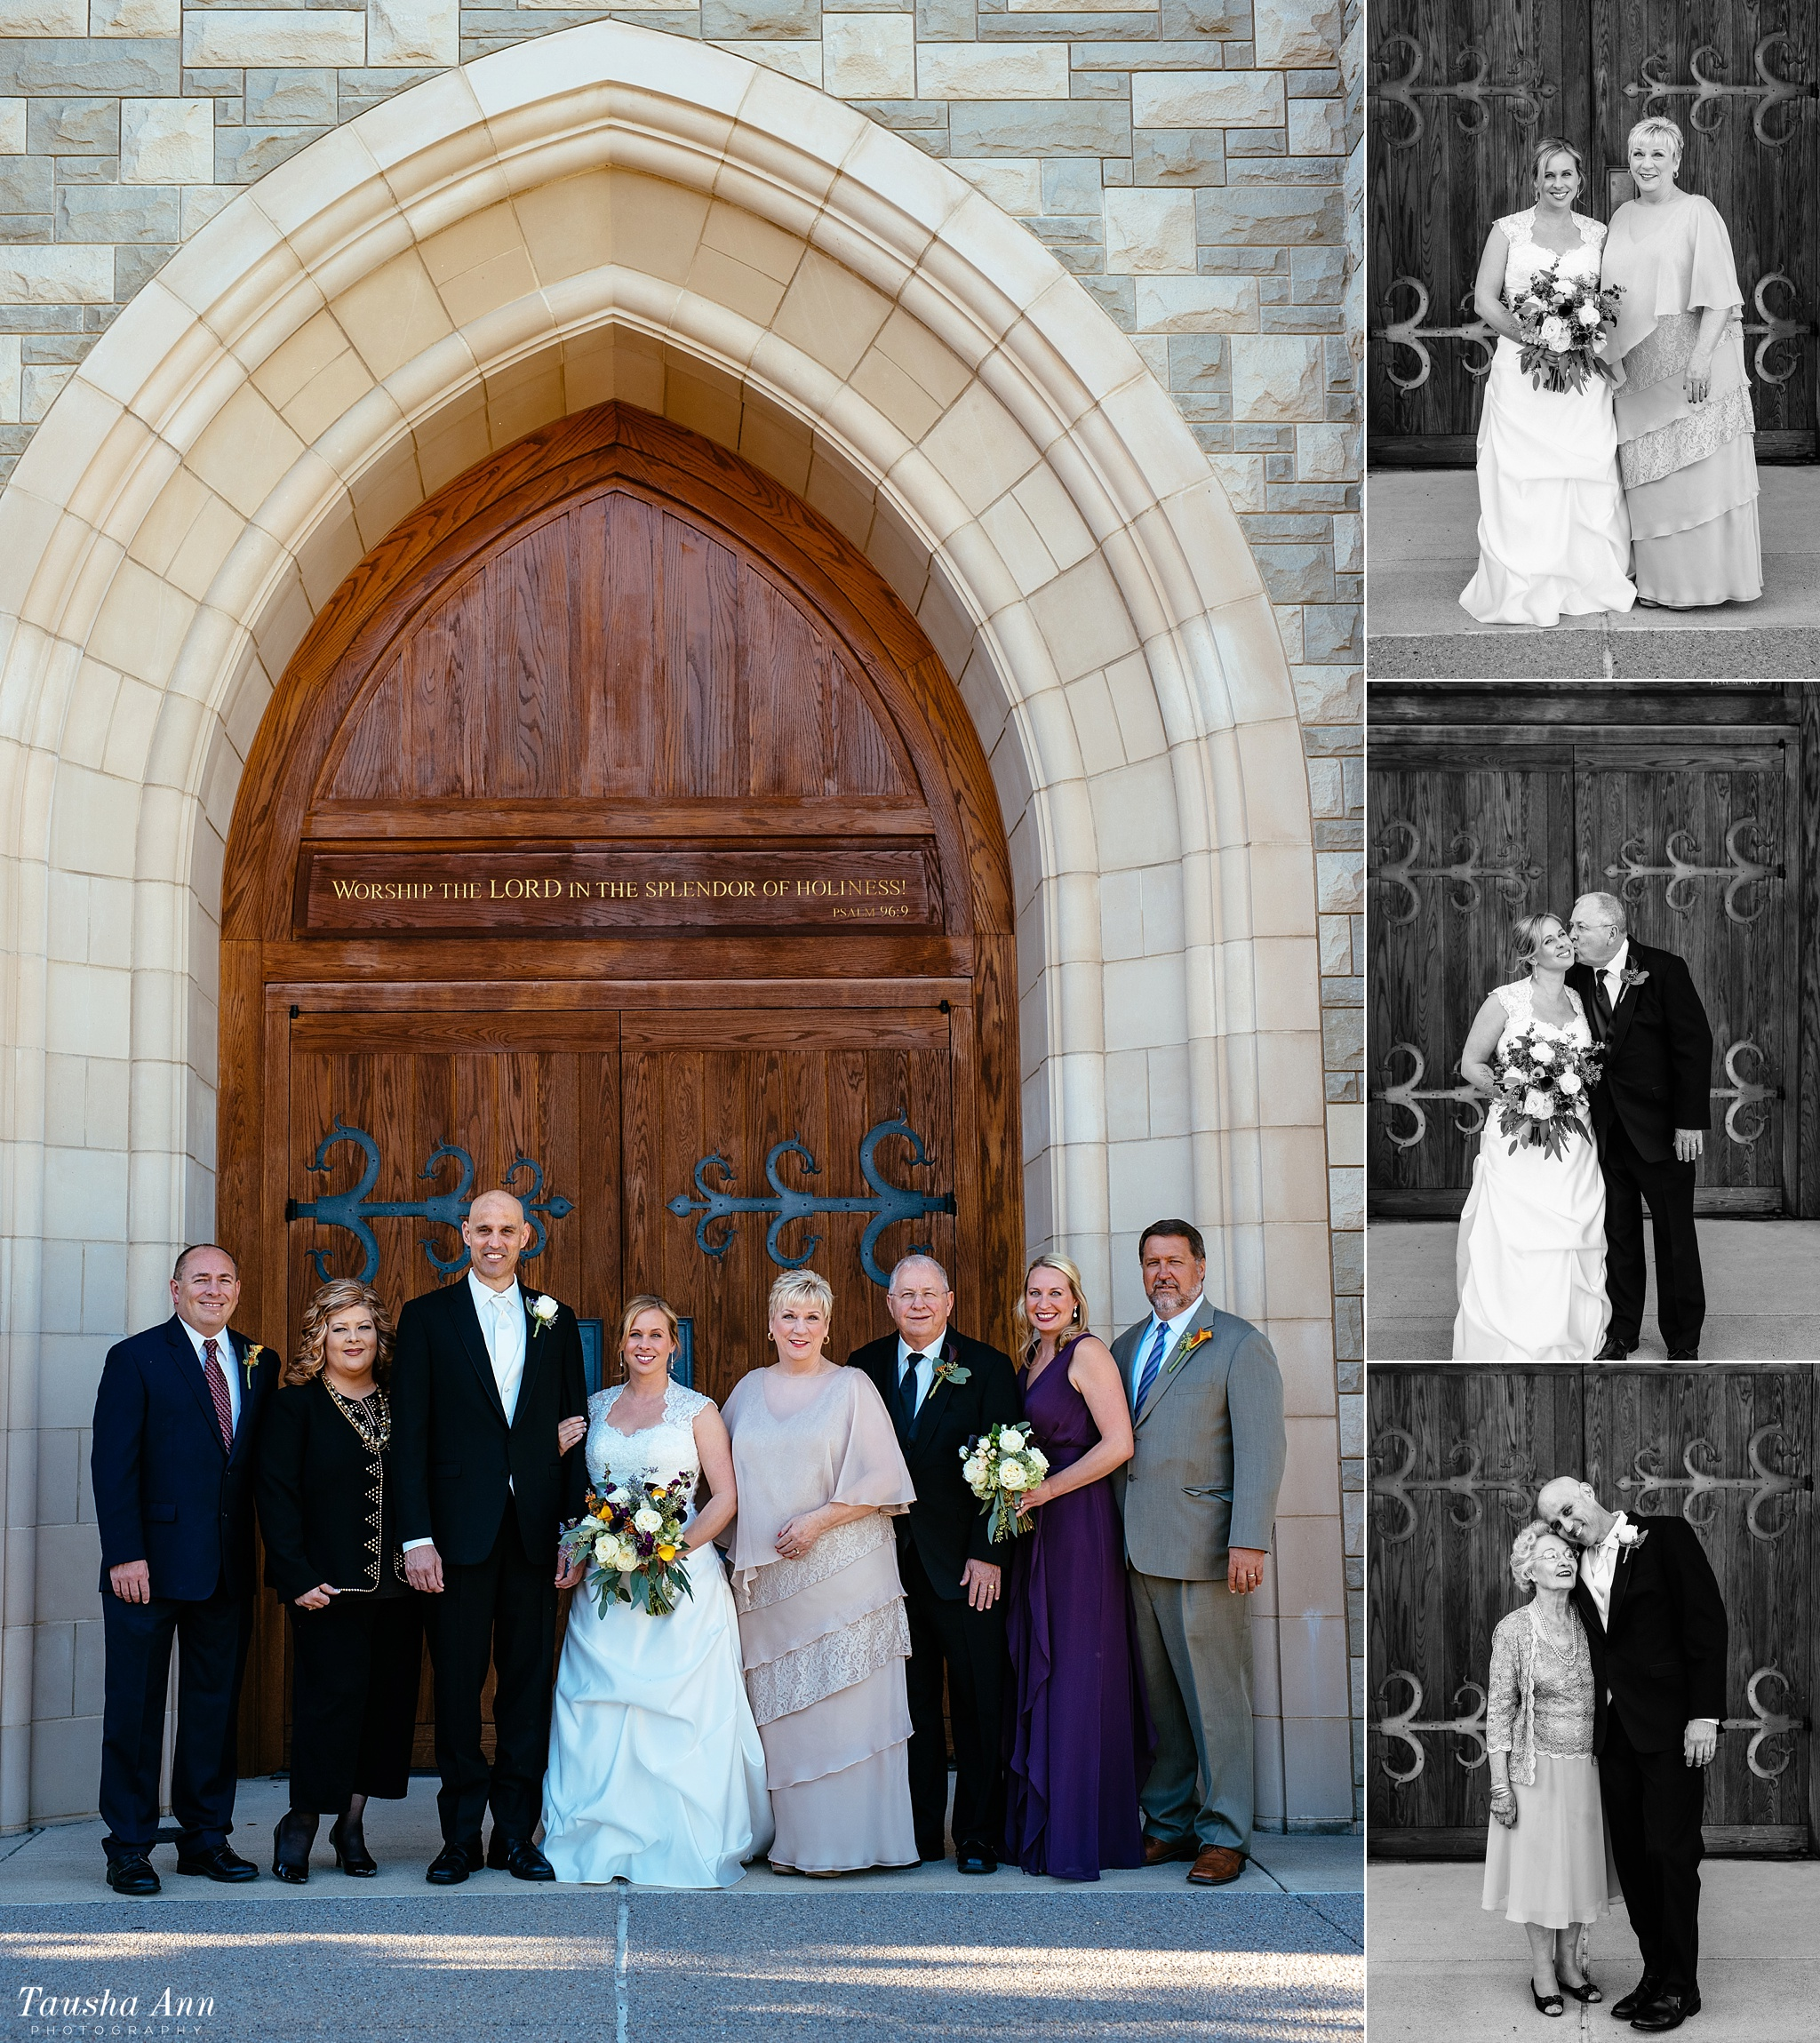 Family portraits outside of covenant Presbyterian with medieval door